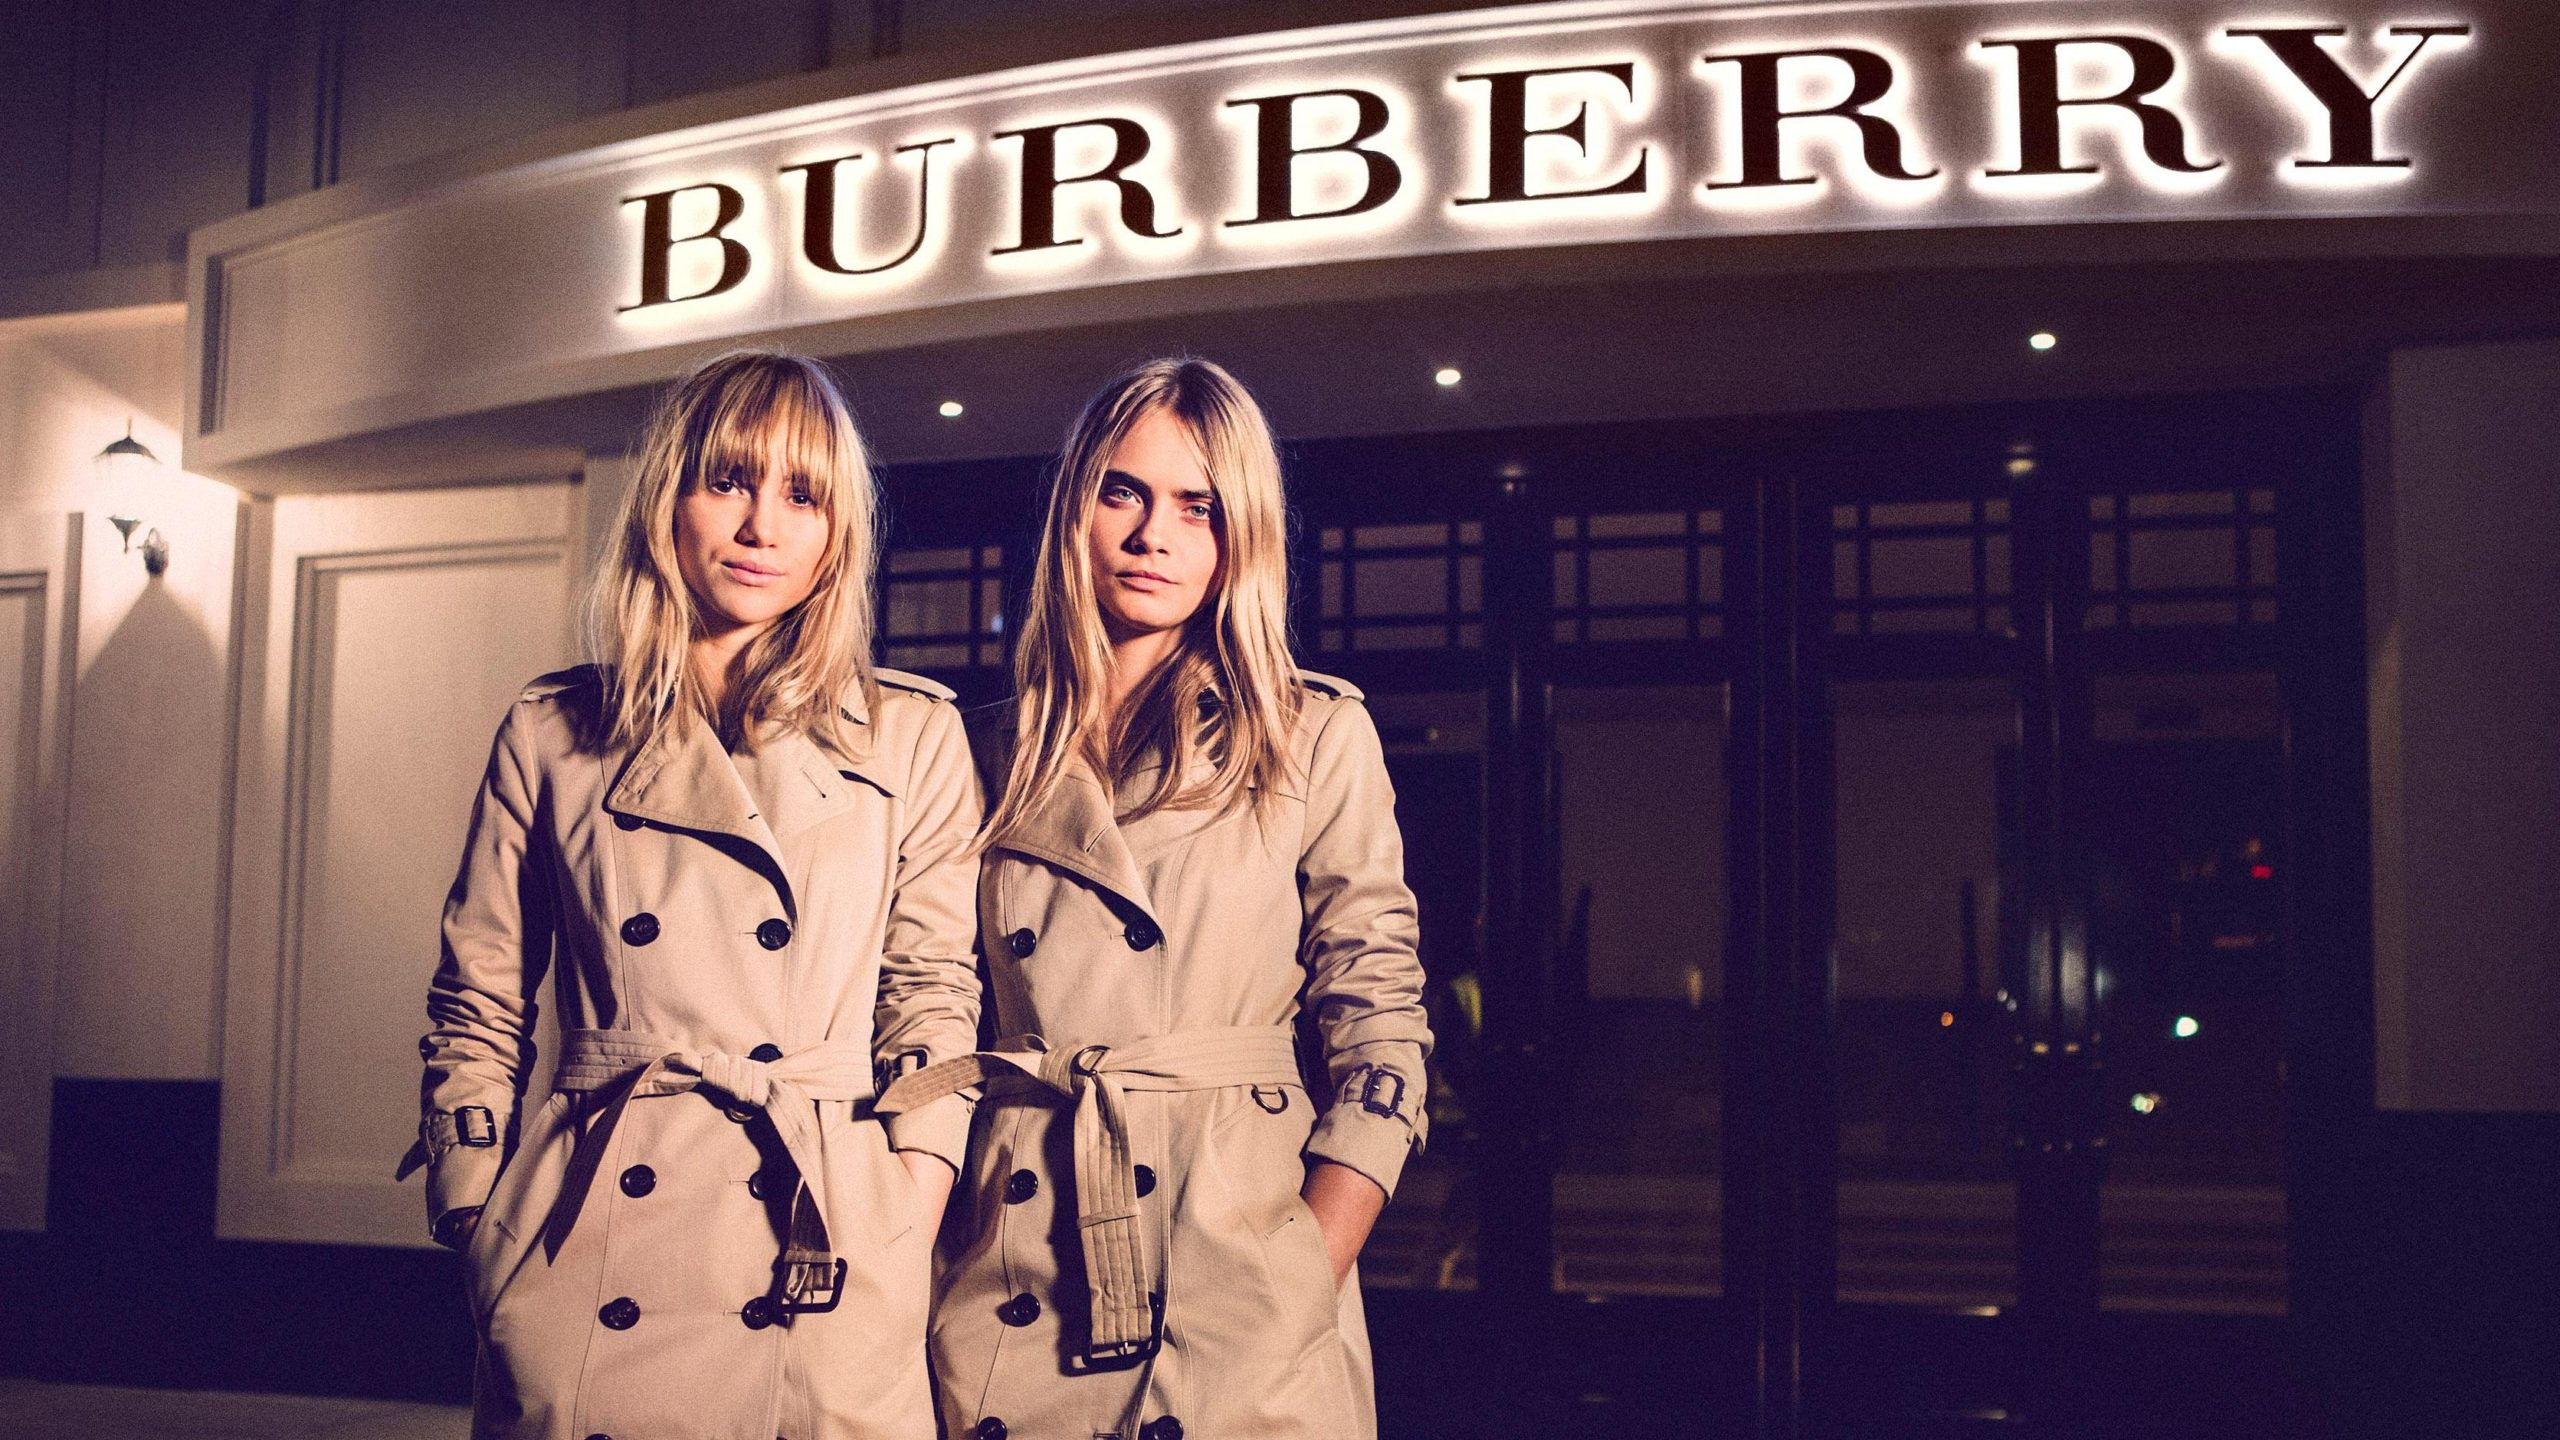 Burberry promotion